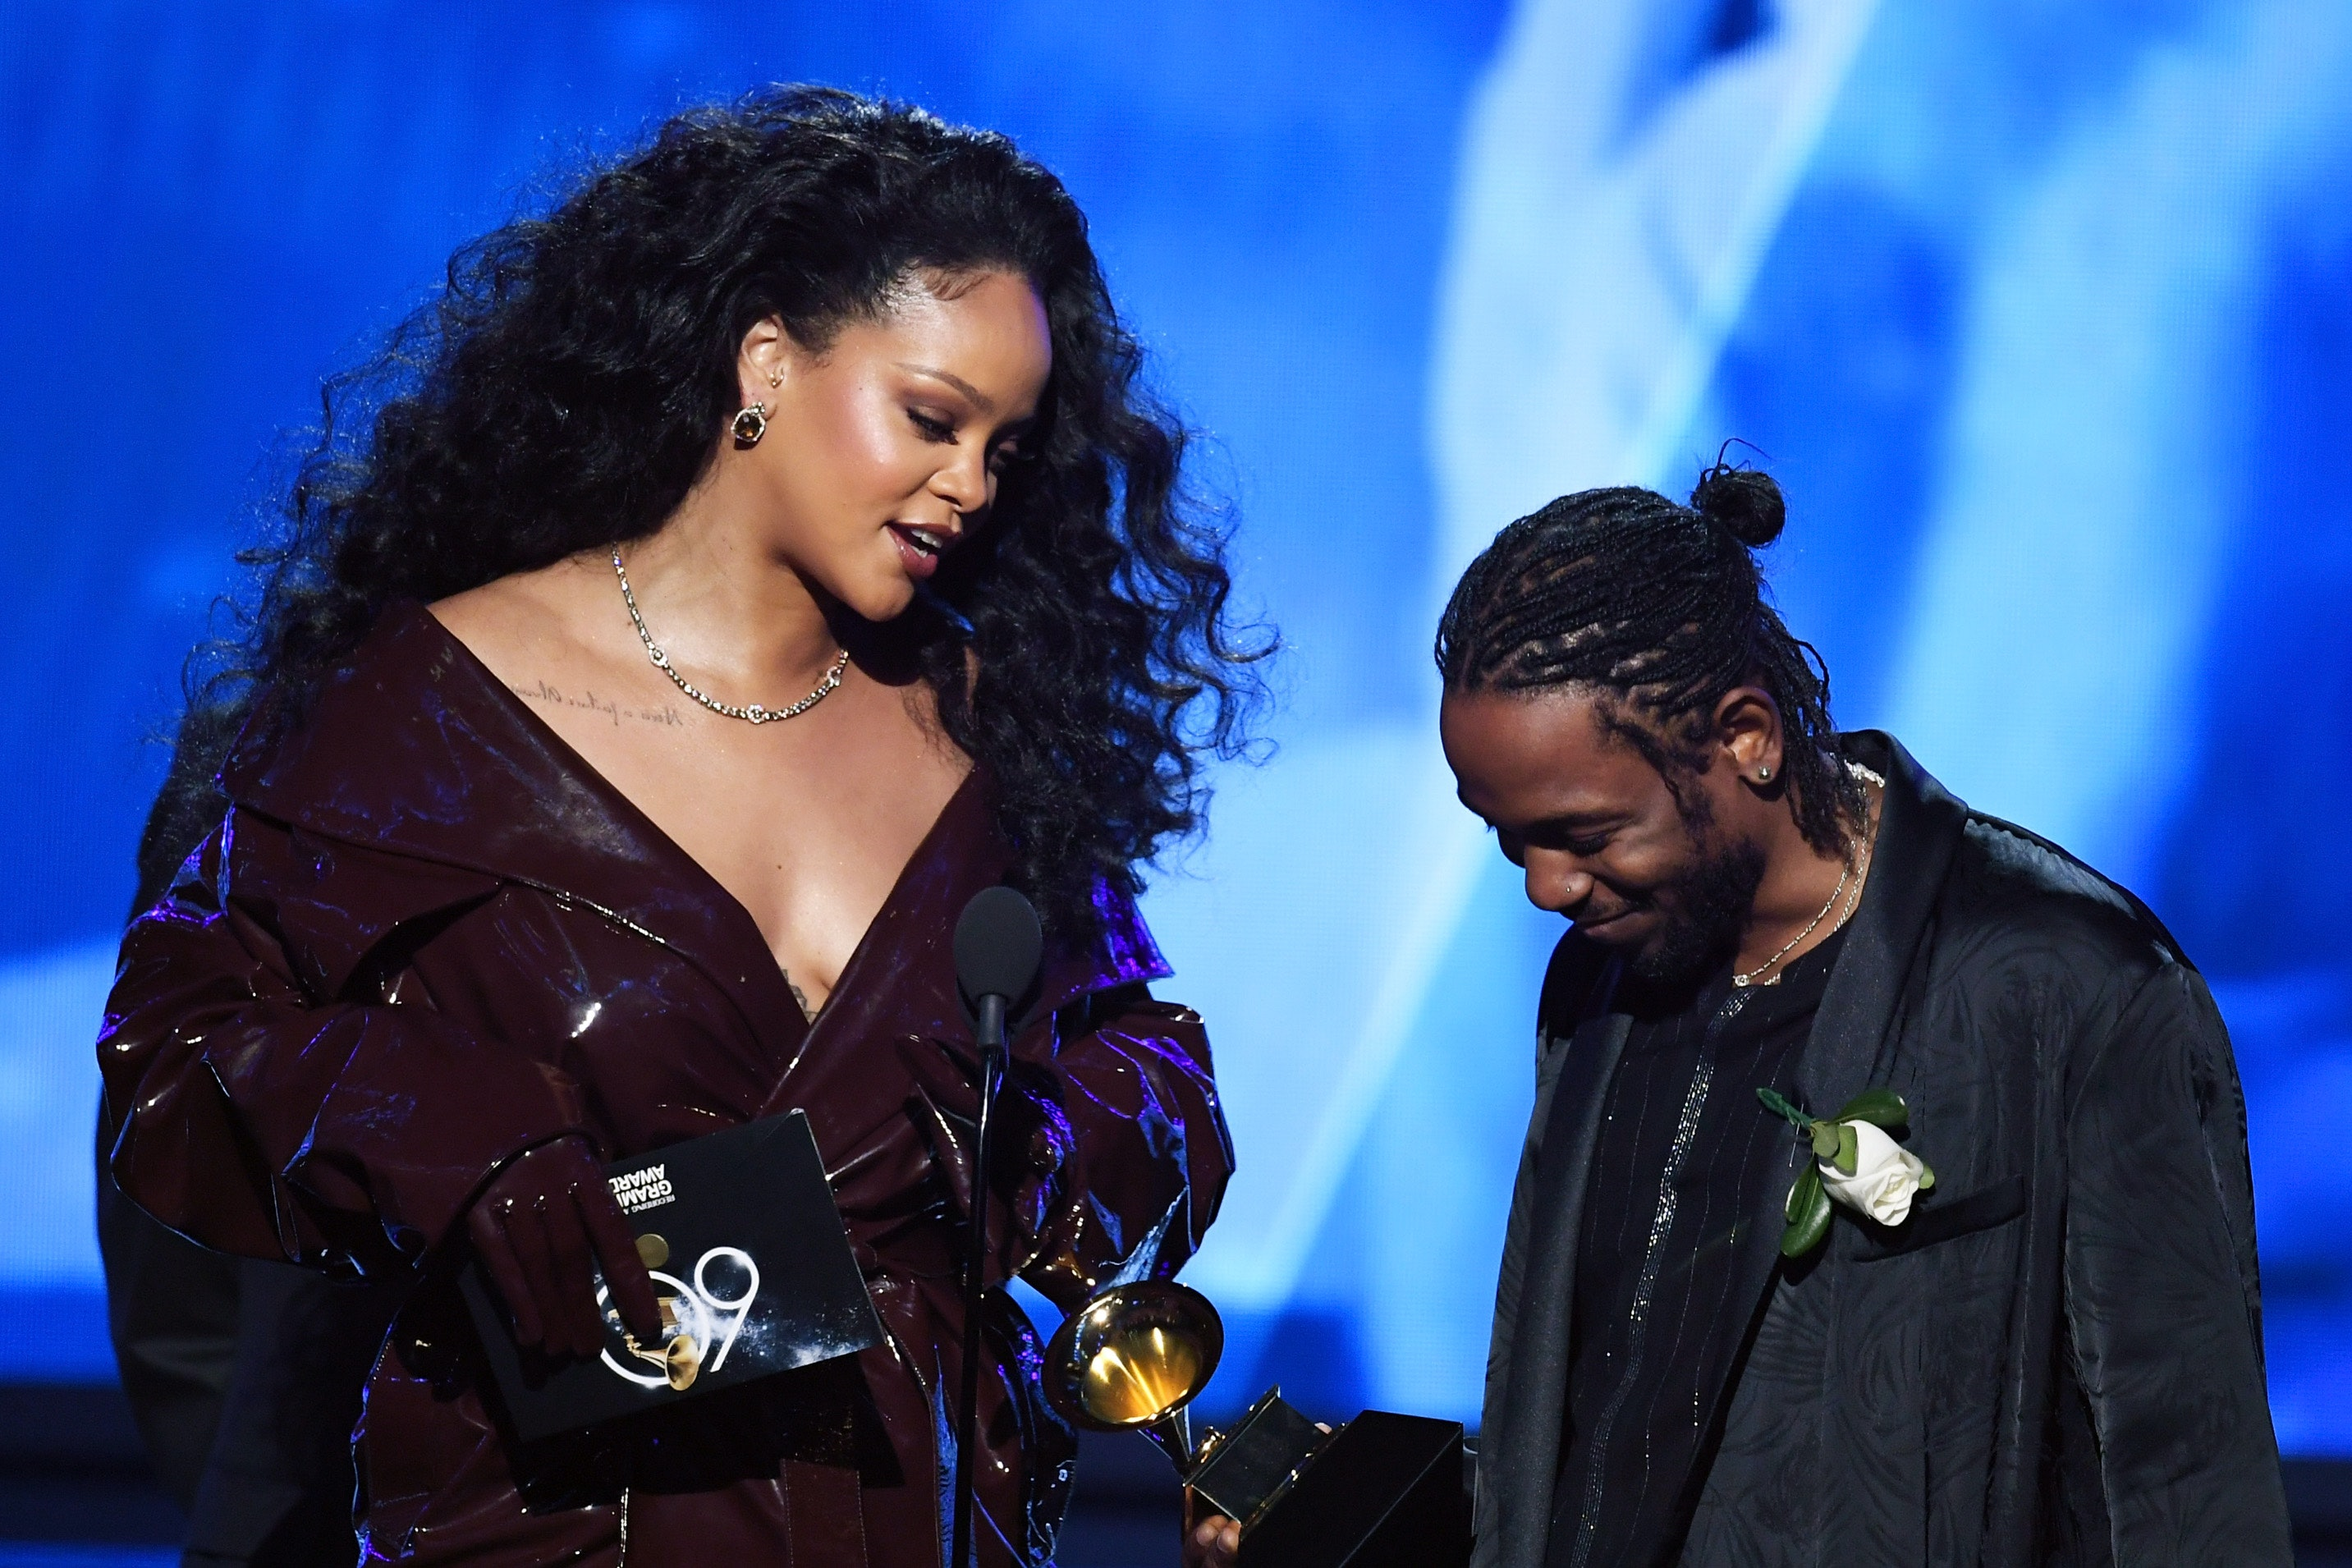 rihanna s outfits at the 2018 grammys were effortlessly glam https www bustle com p rihannas outfits at the 2018 grammys were effortlessly glam 8039810